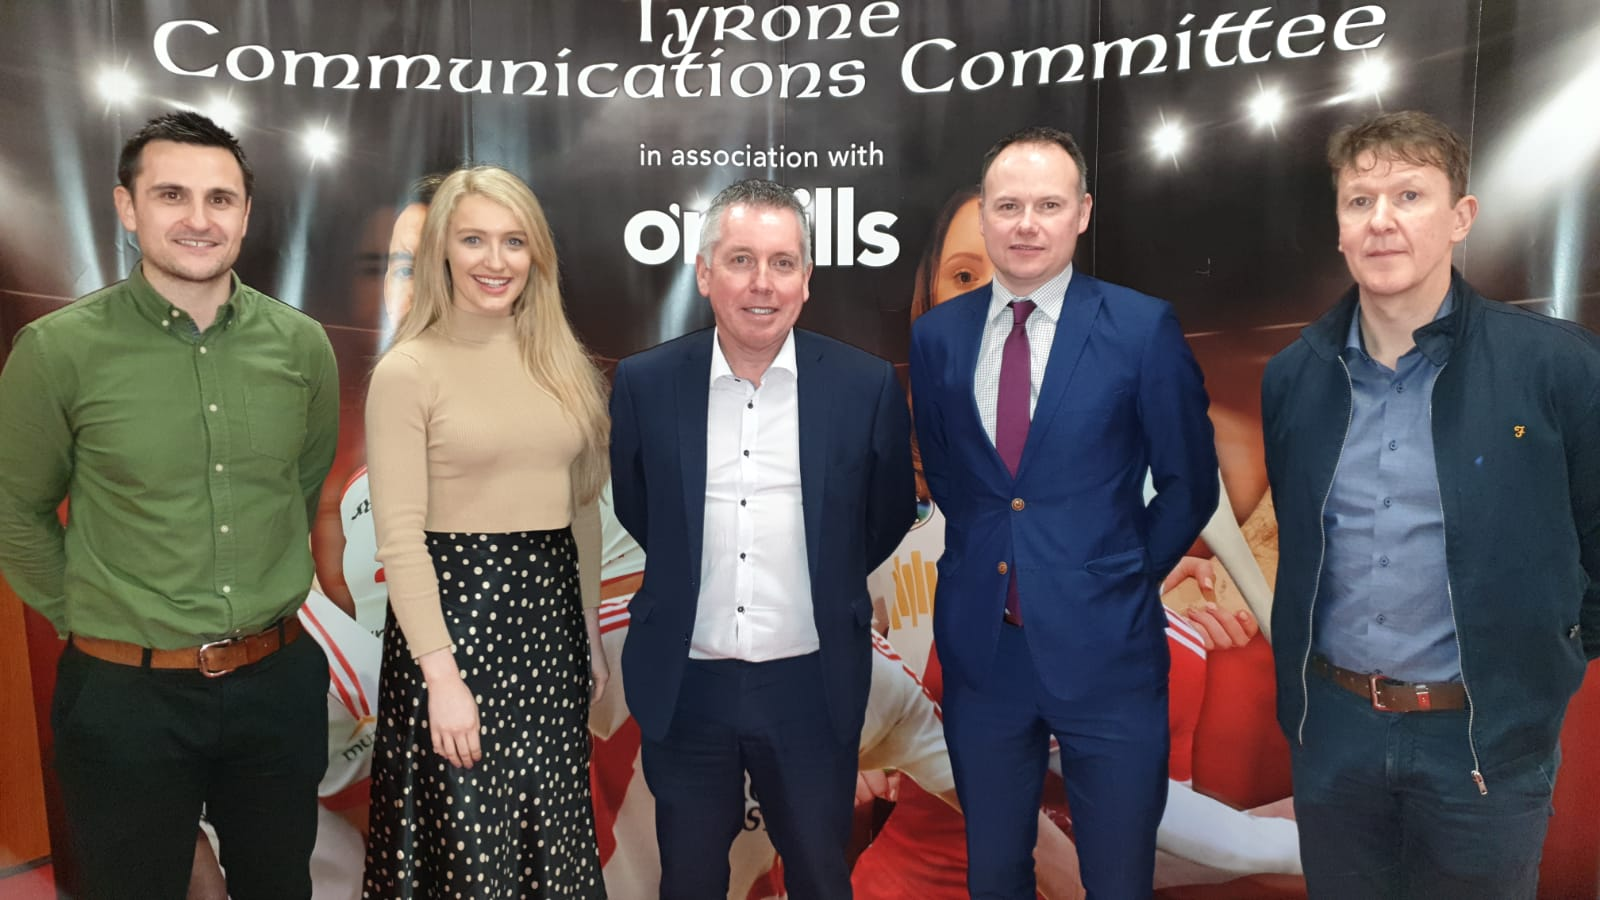 Tyrone Communications Committee Club PRO's Seminar.